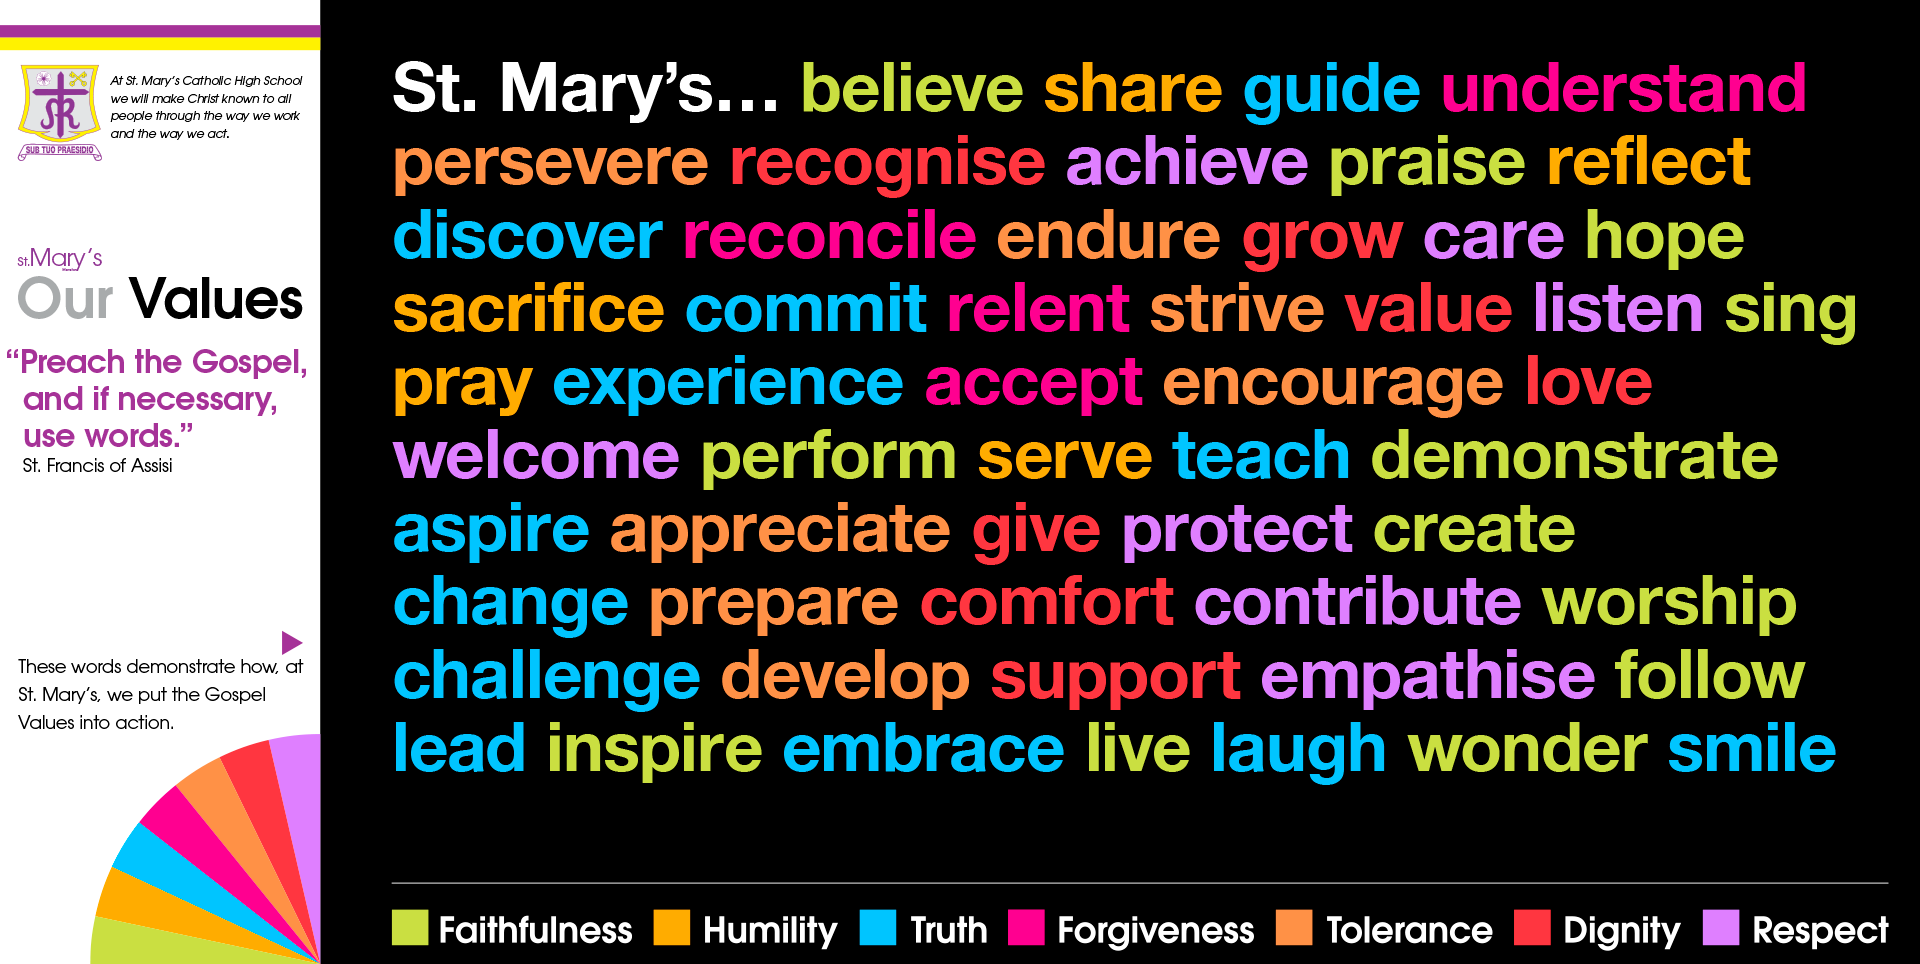 Photos-of-the-Values-around-school-003.PNG